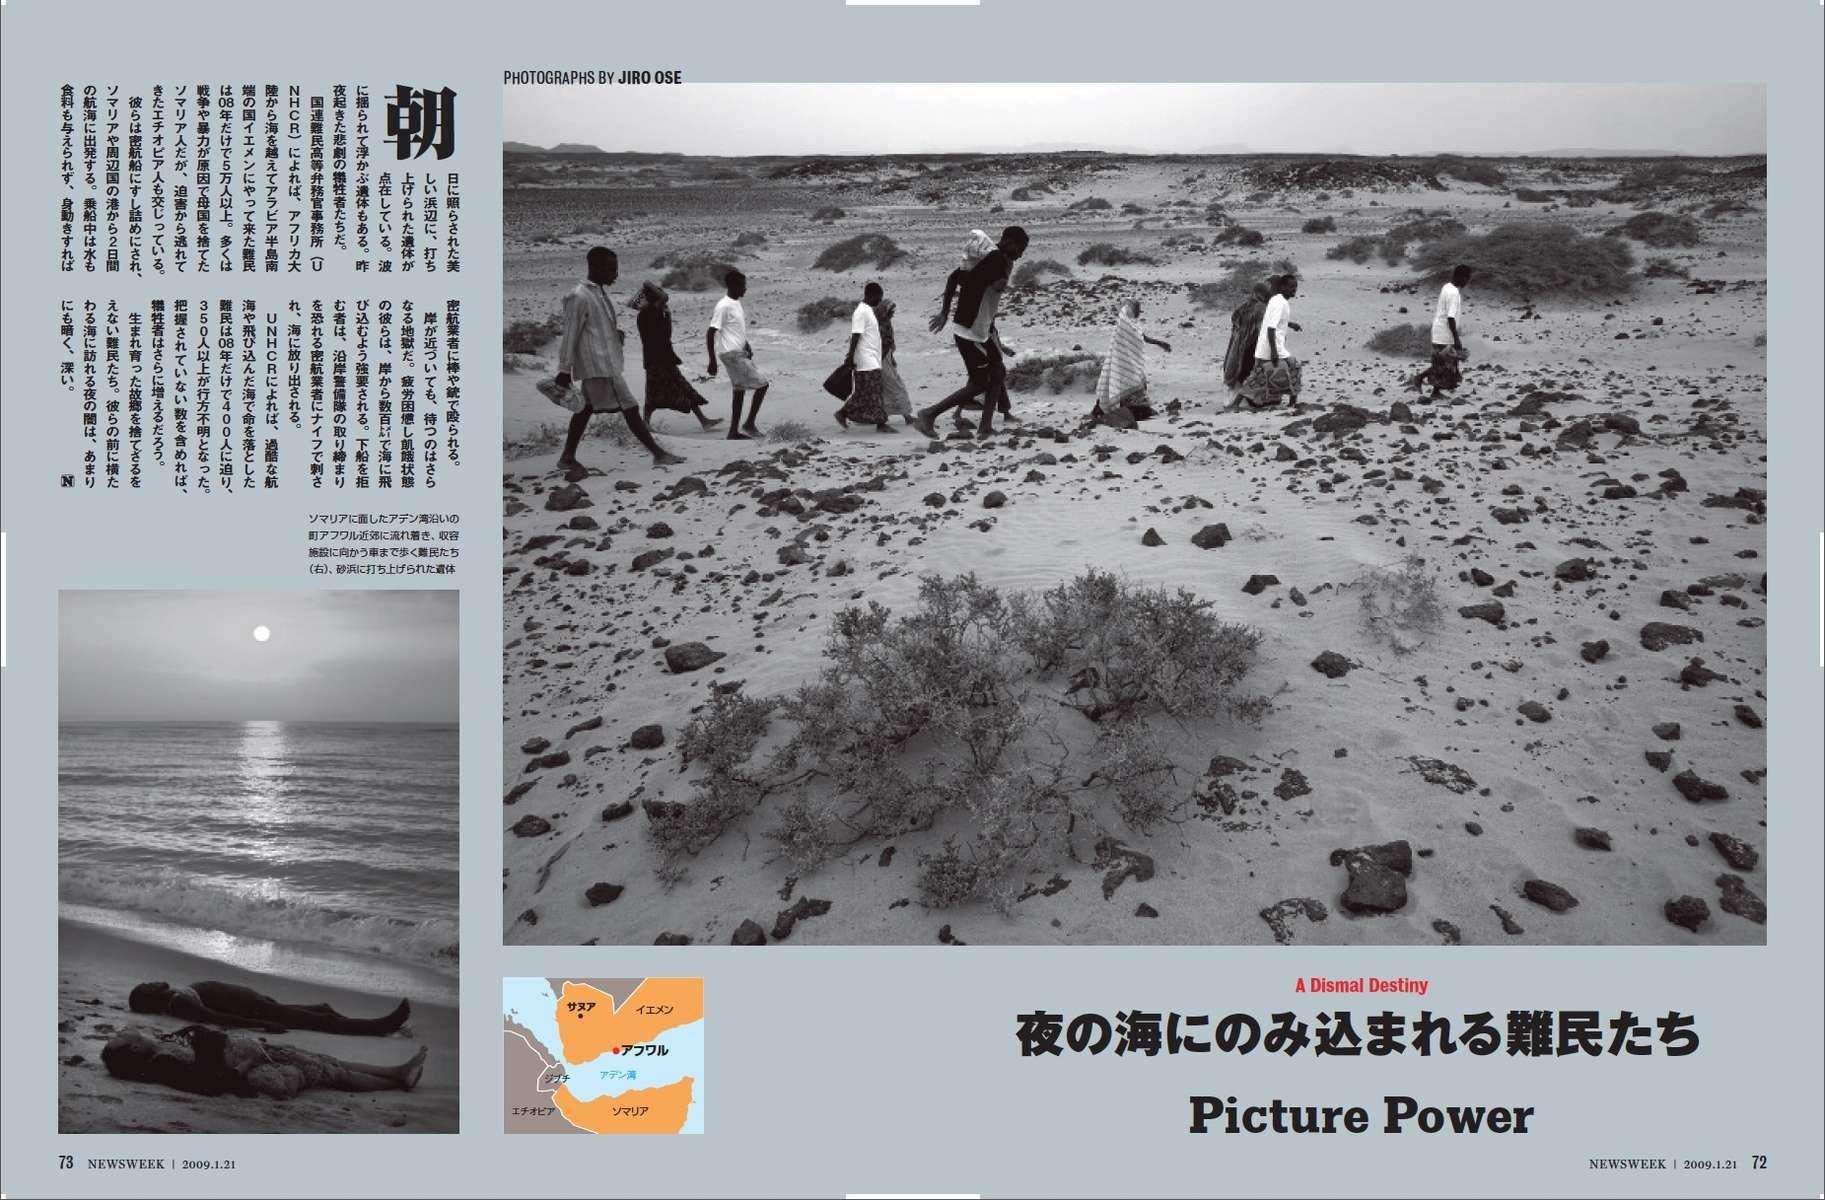 Newsweek Japan, Somali Refugees in Yemen